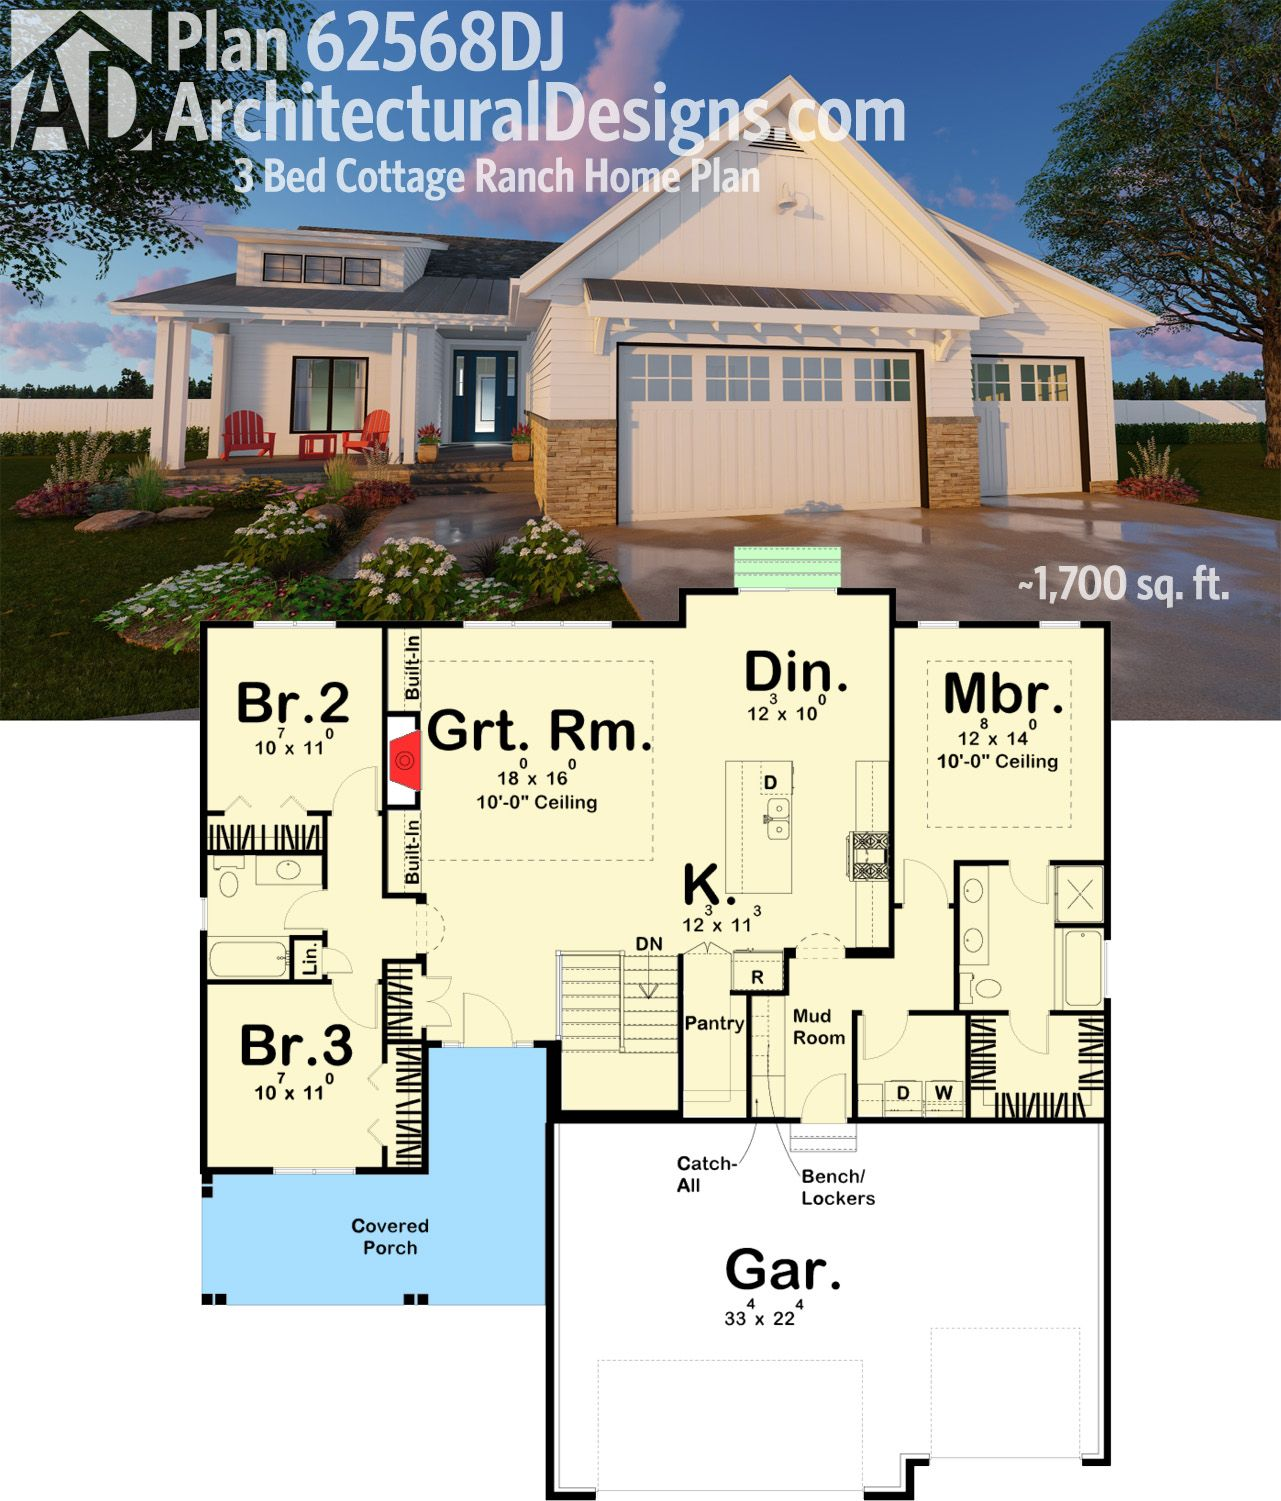 Architectural Designs 3 Bed Cottage House Plan 62568DJ